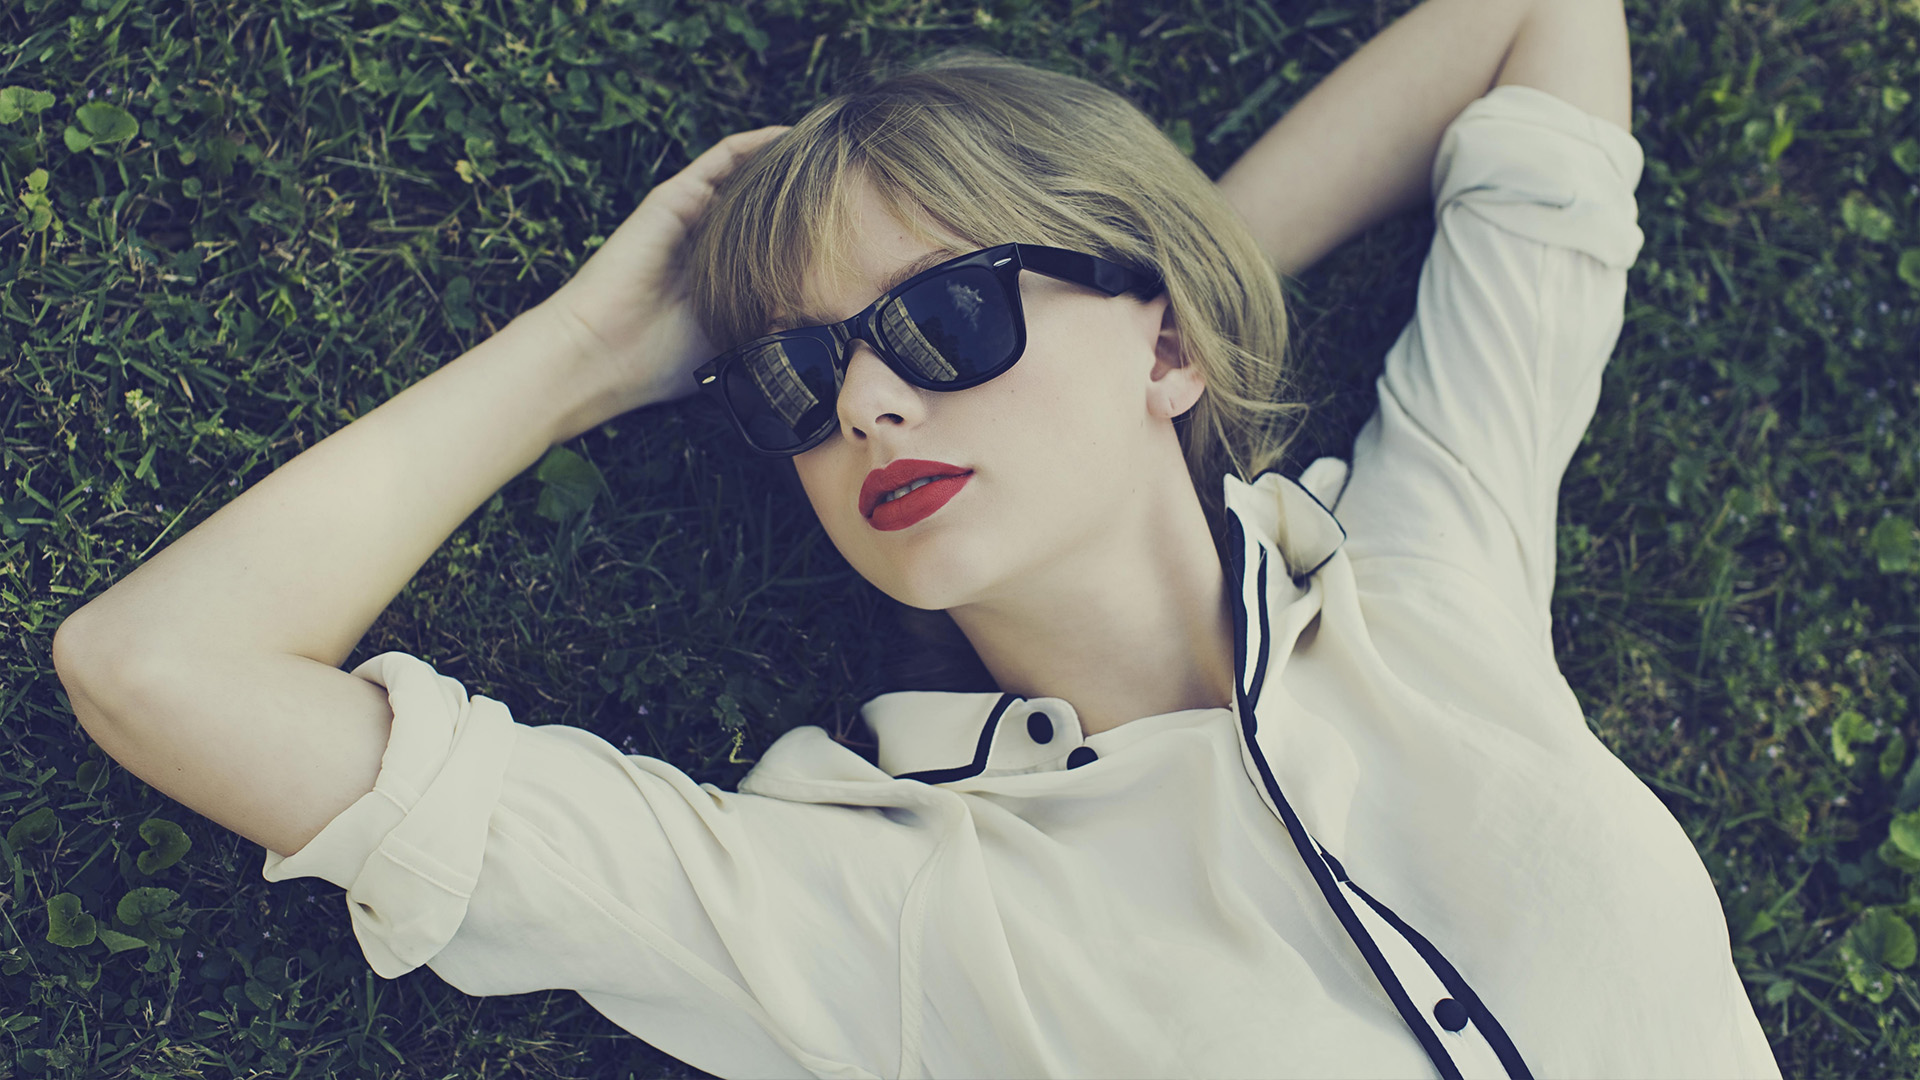 lovely pictures of taylor swift